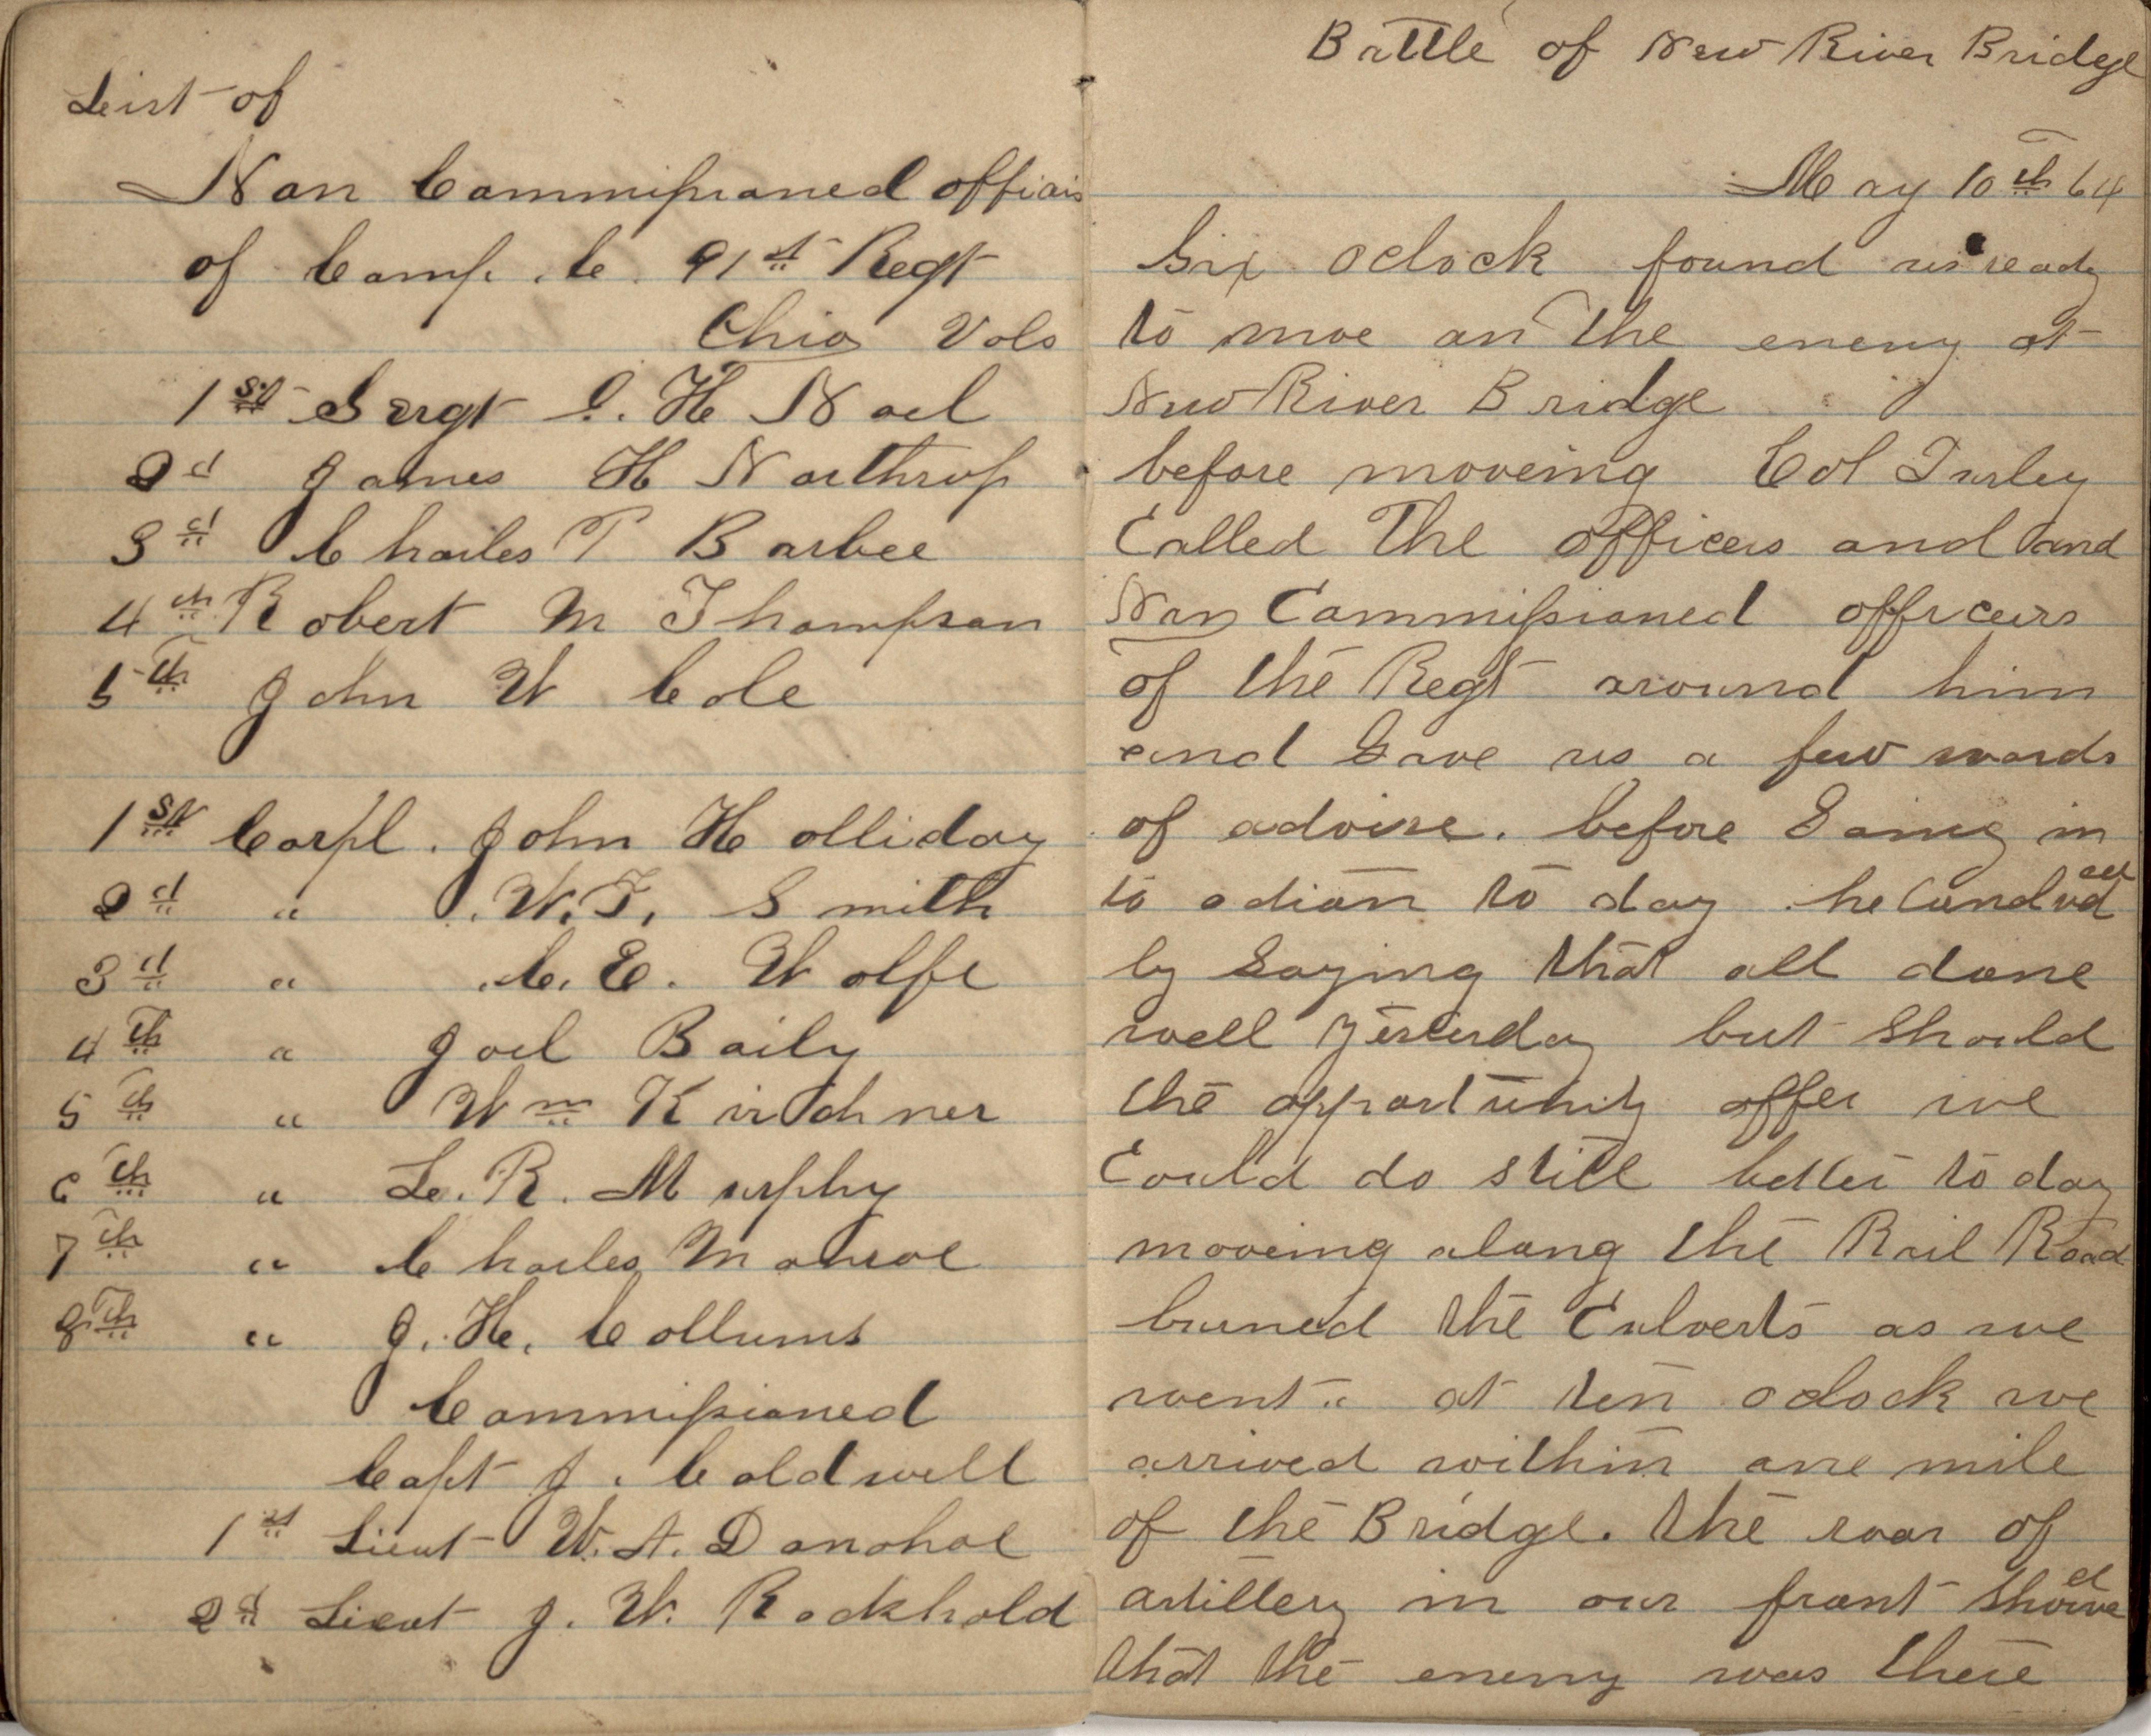 A page spread from John Holliday's first diary, featuring his entry for May 10, 1864, The Battle of New River Bridge